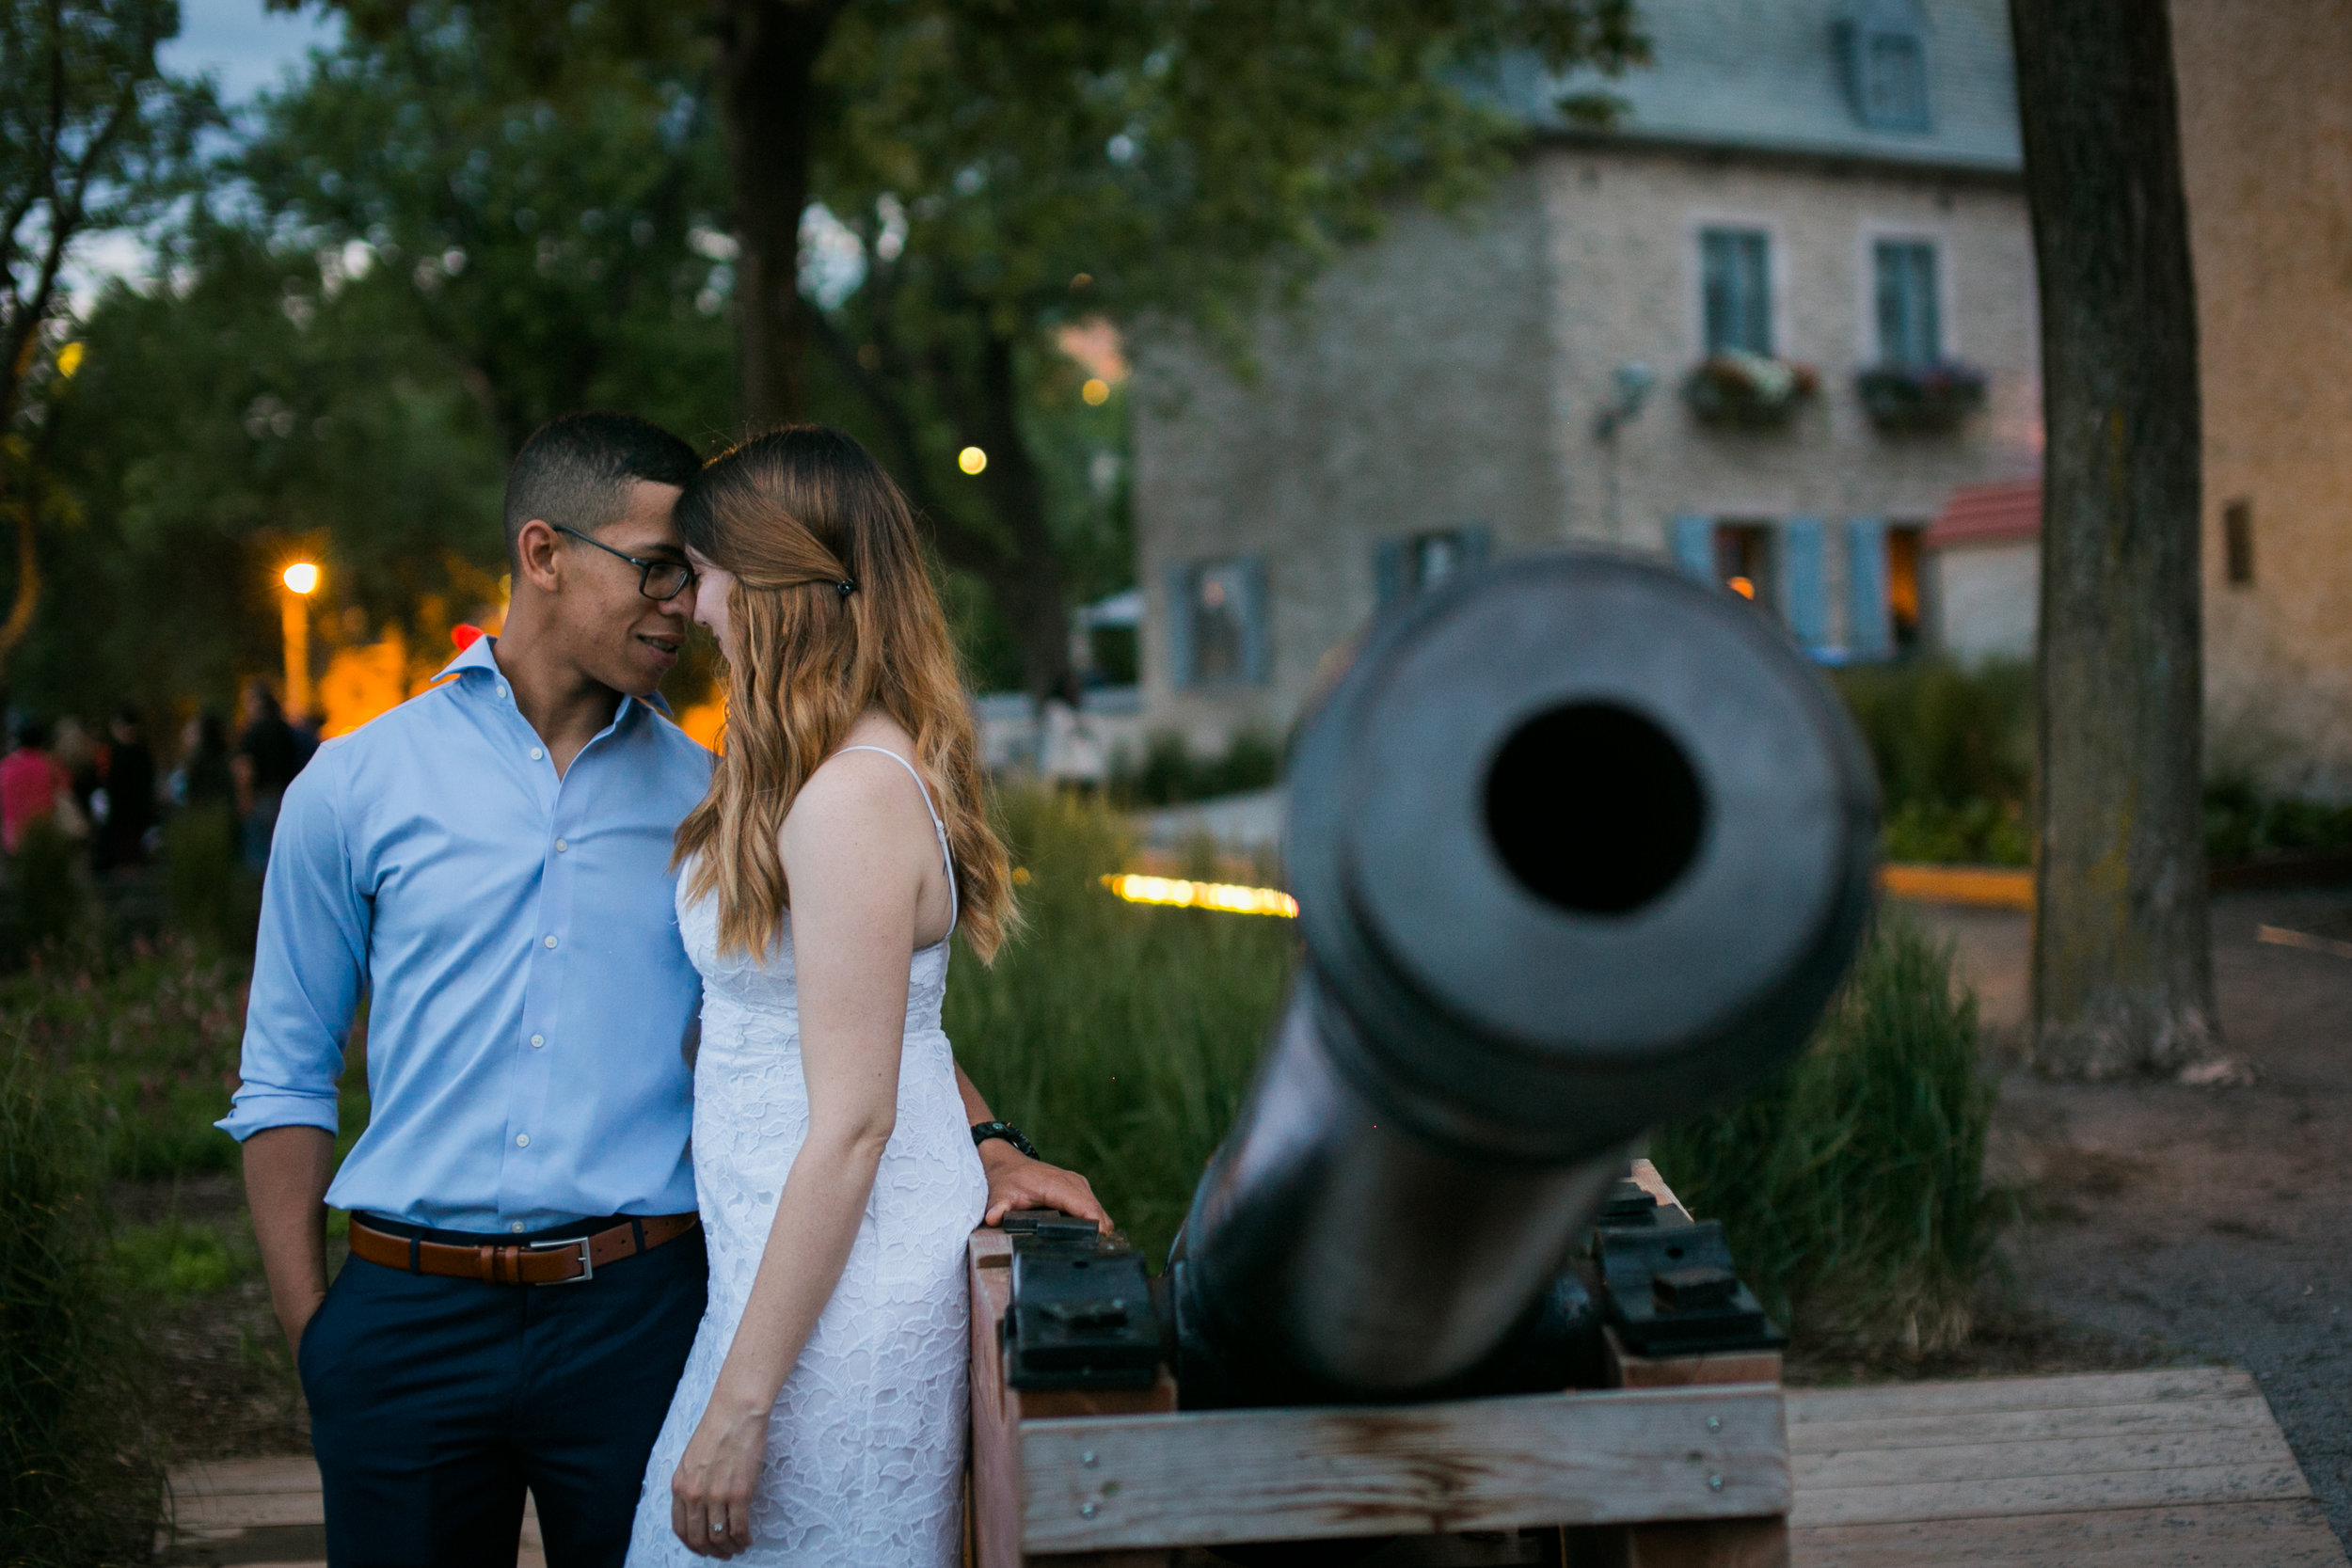 Vieux Old quebec engagement photos at sunset by Ness Photography.16.jpg